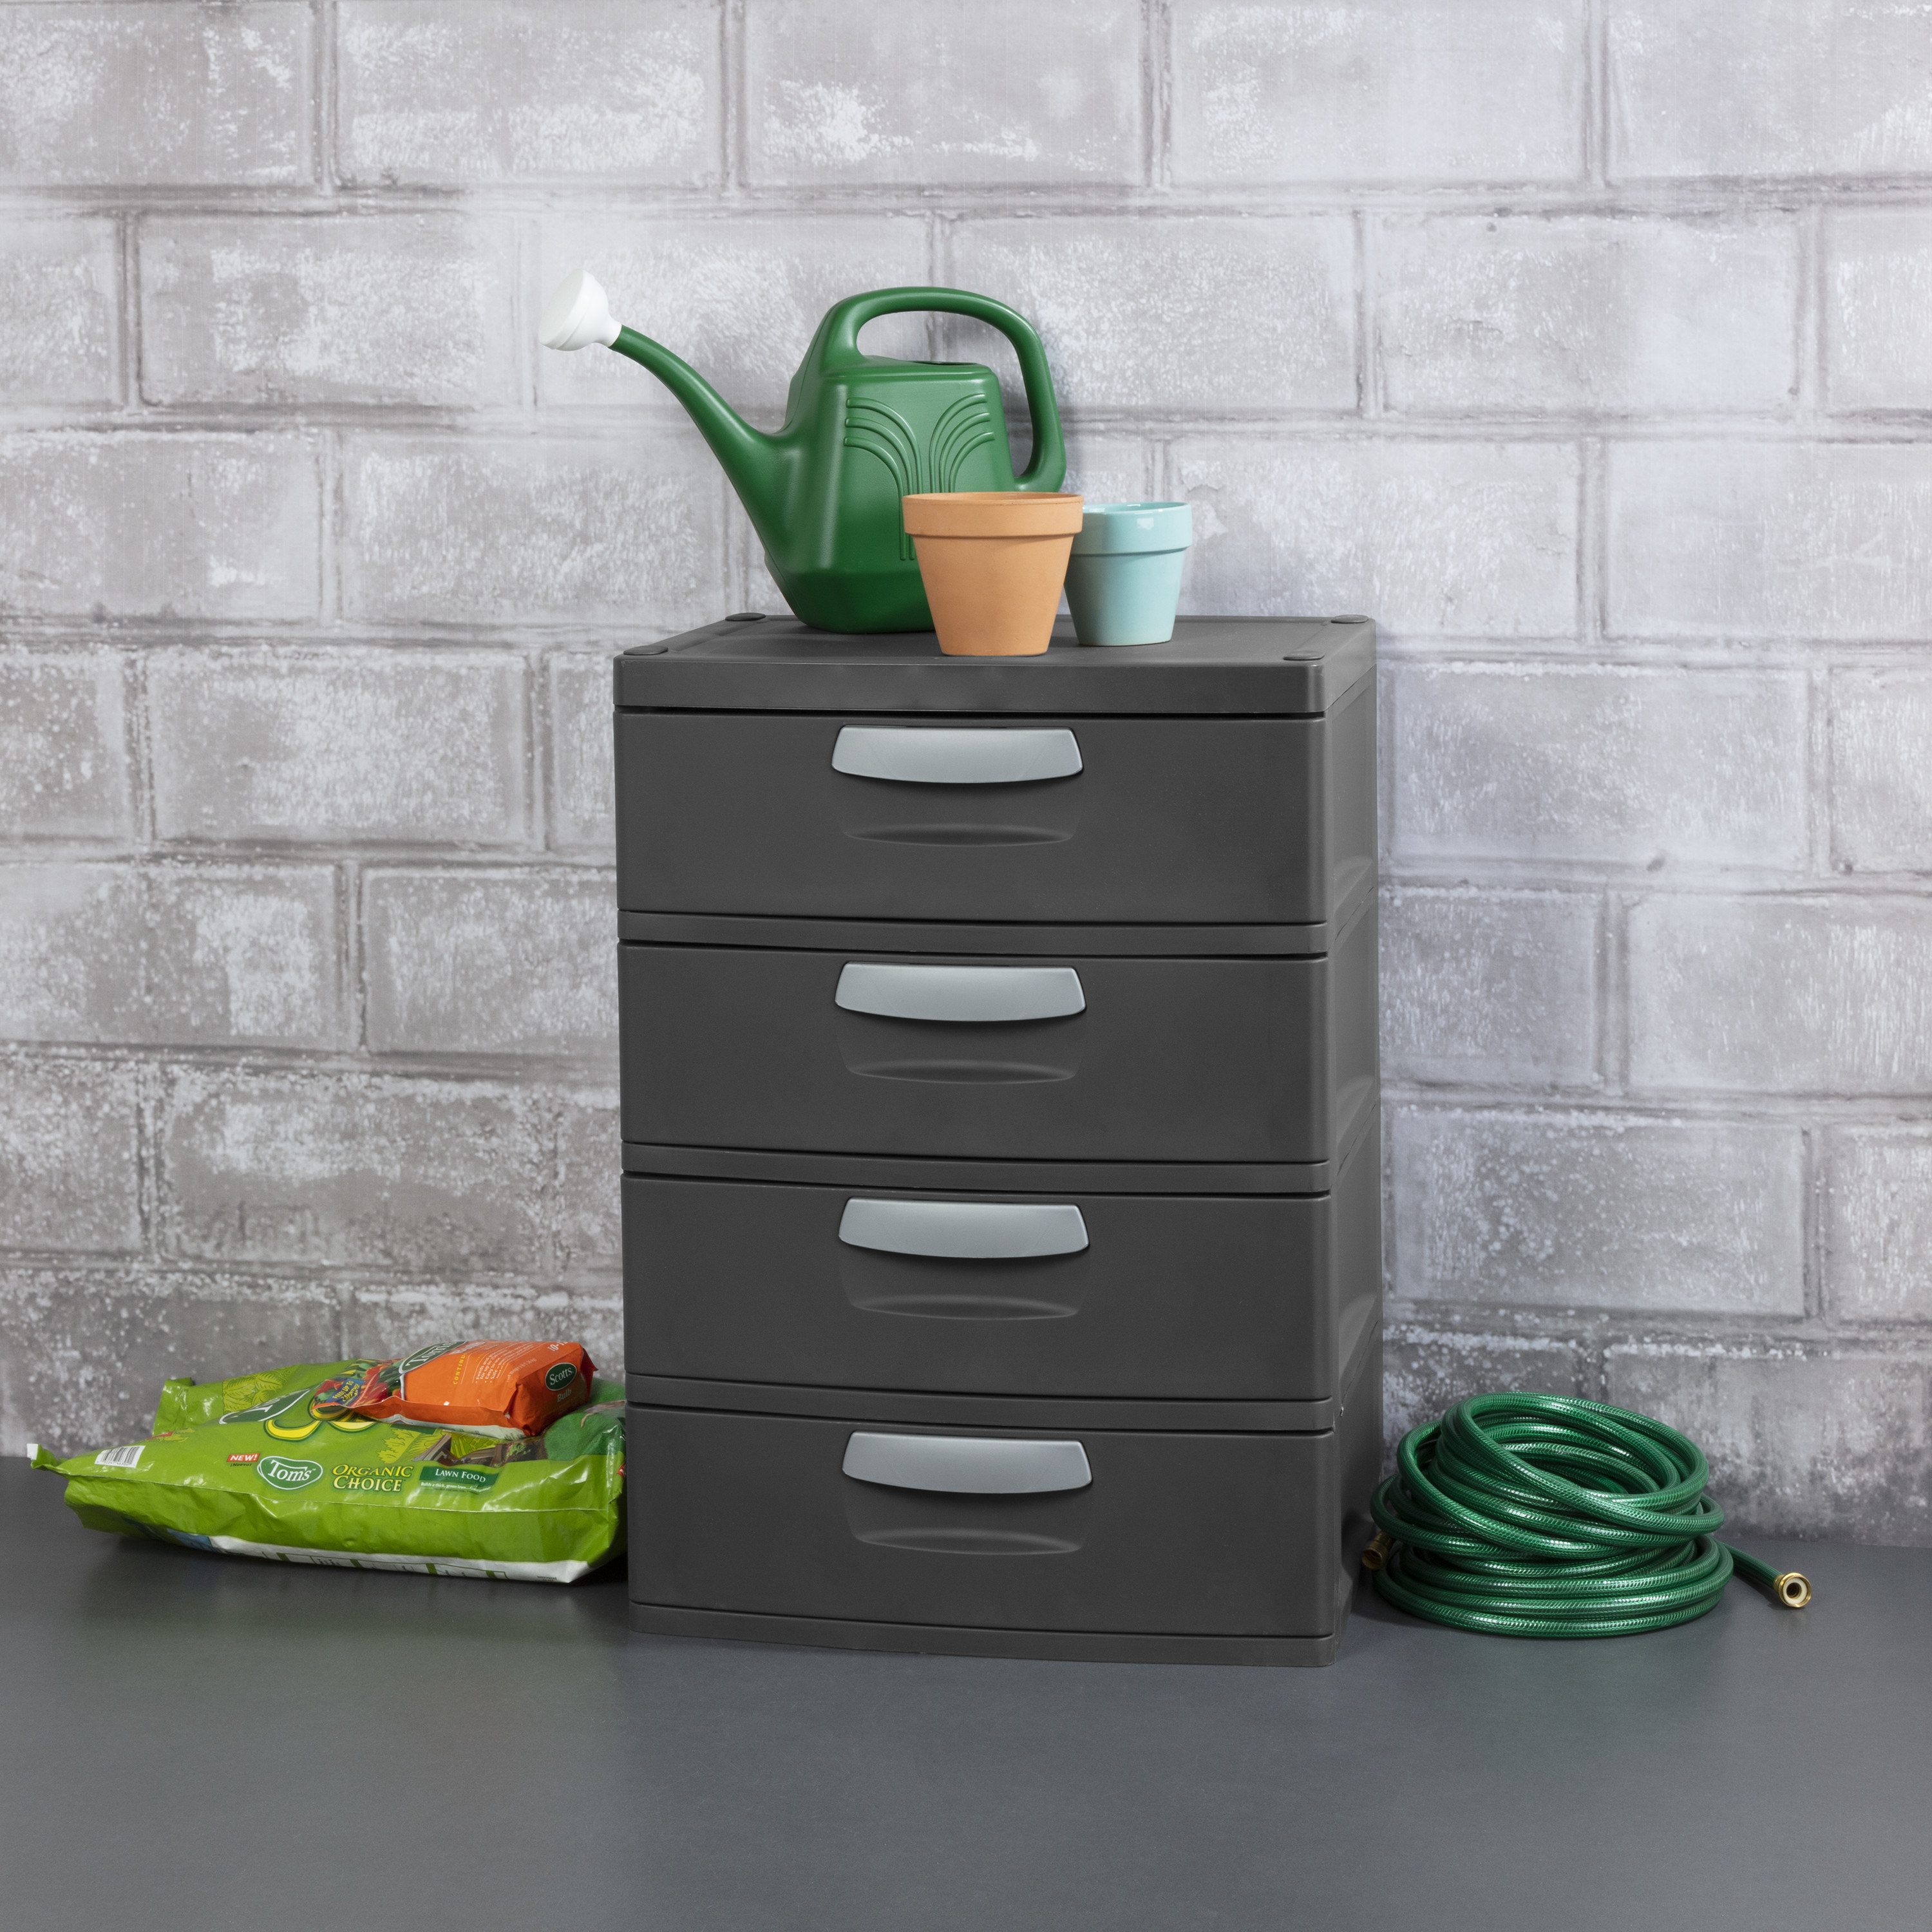 The four-drawer unit